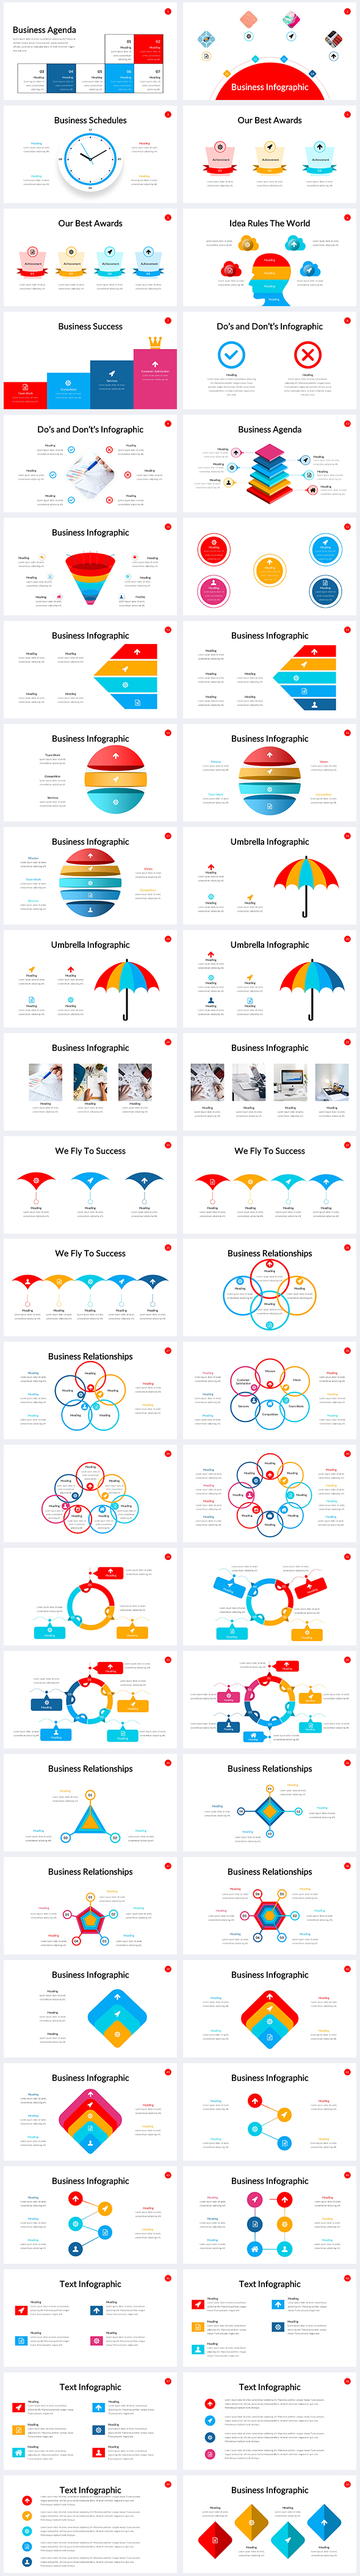 Business-Infographic-Power-Point-Template